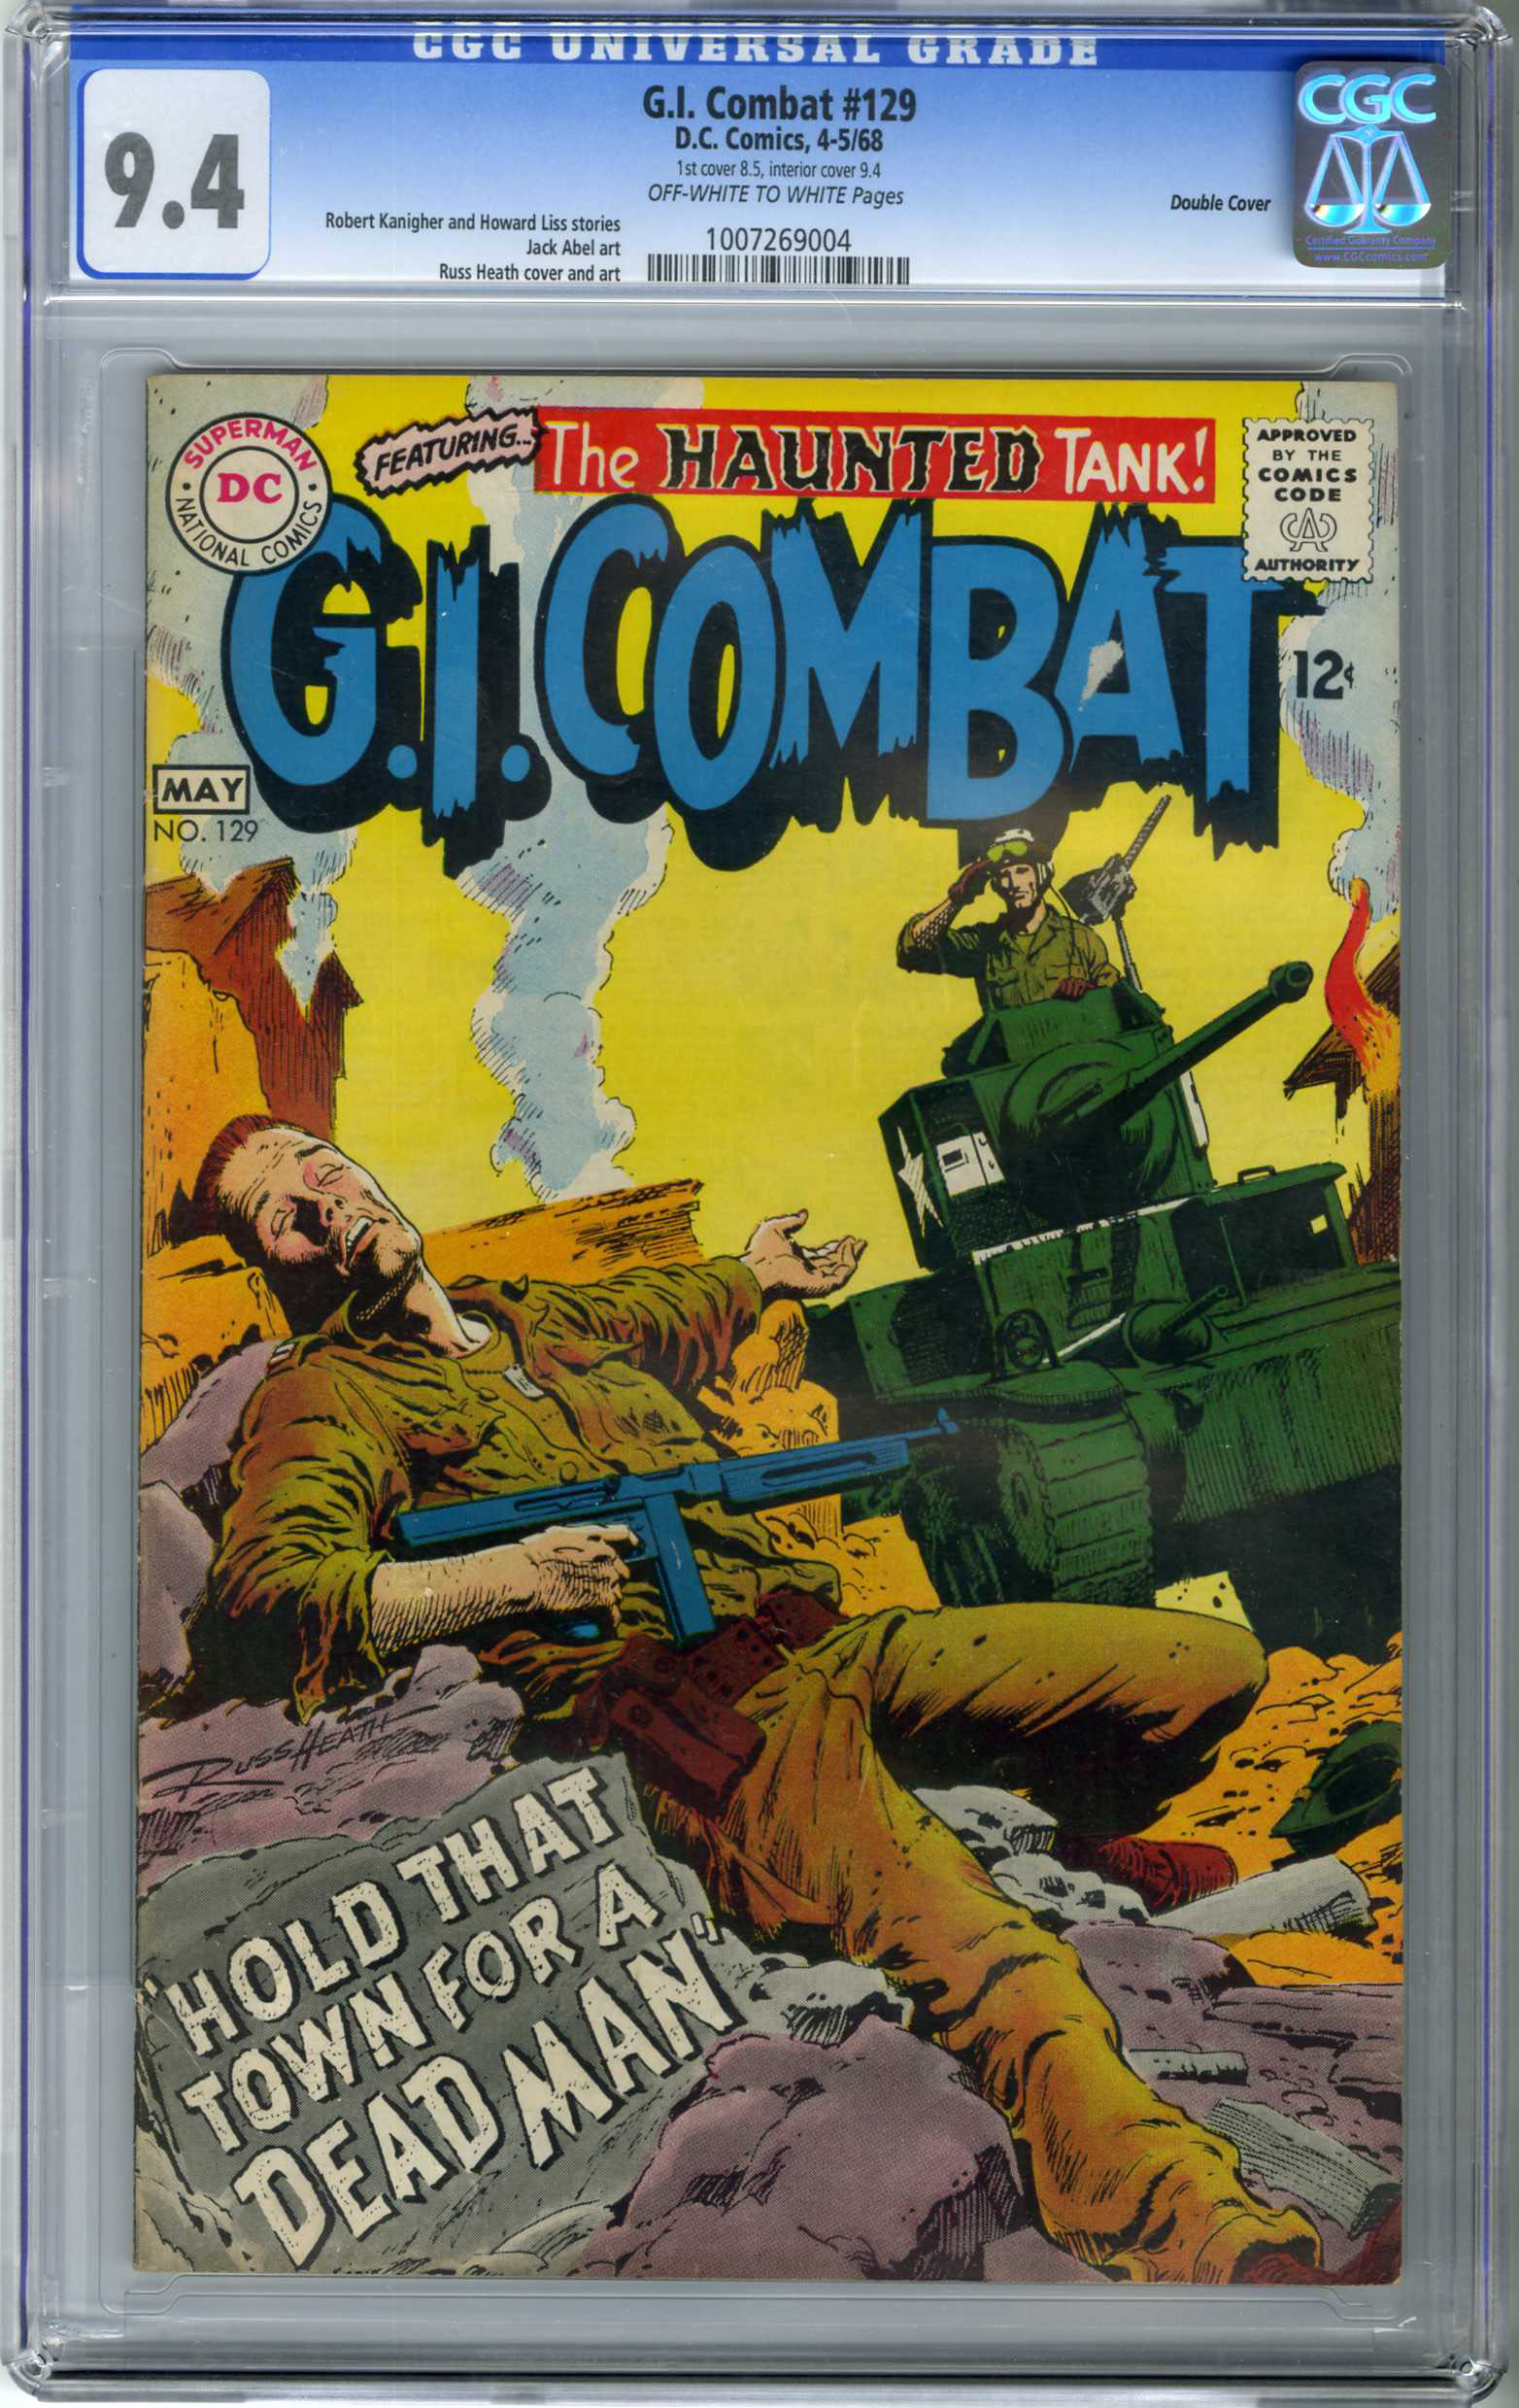 G.I. COMBAT #129 (1968) CGC NM 9.4 COW Pages DOUBLE COVER / RUSS HEATH ART